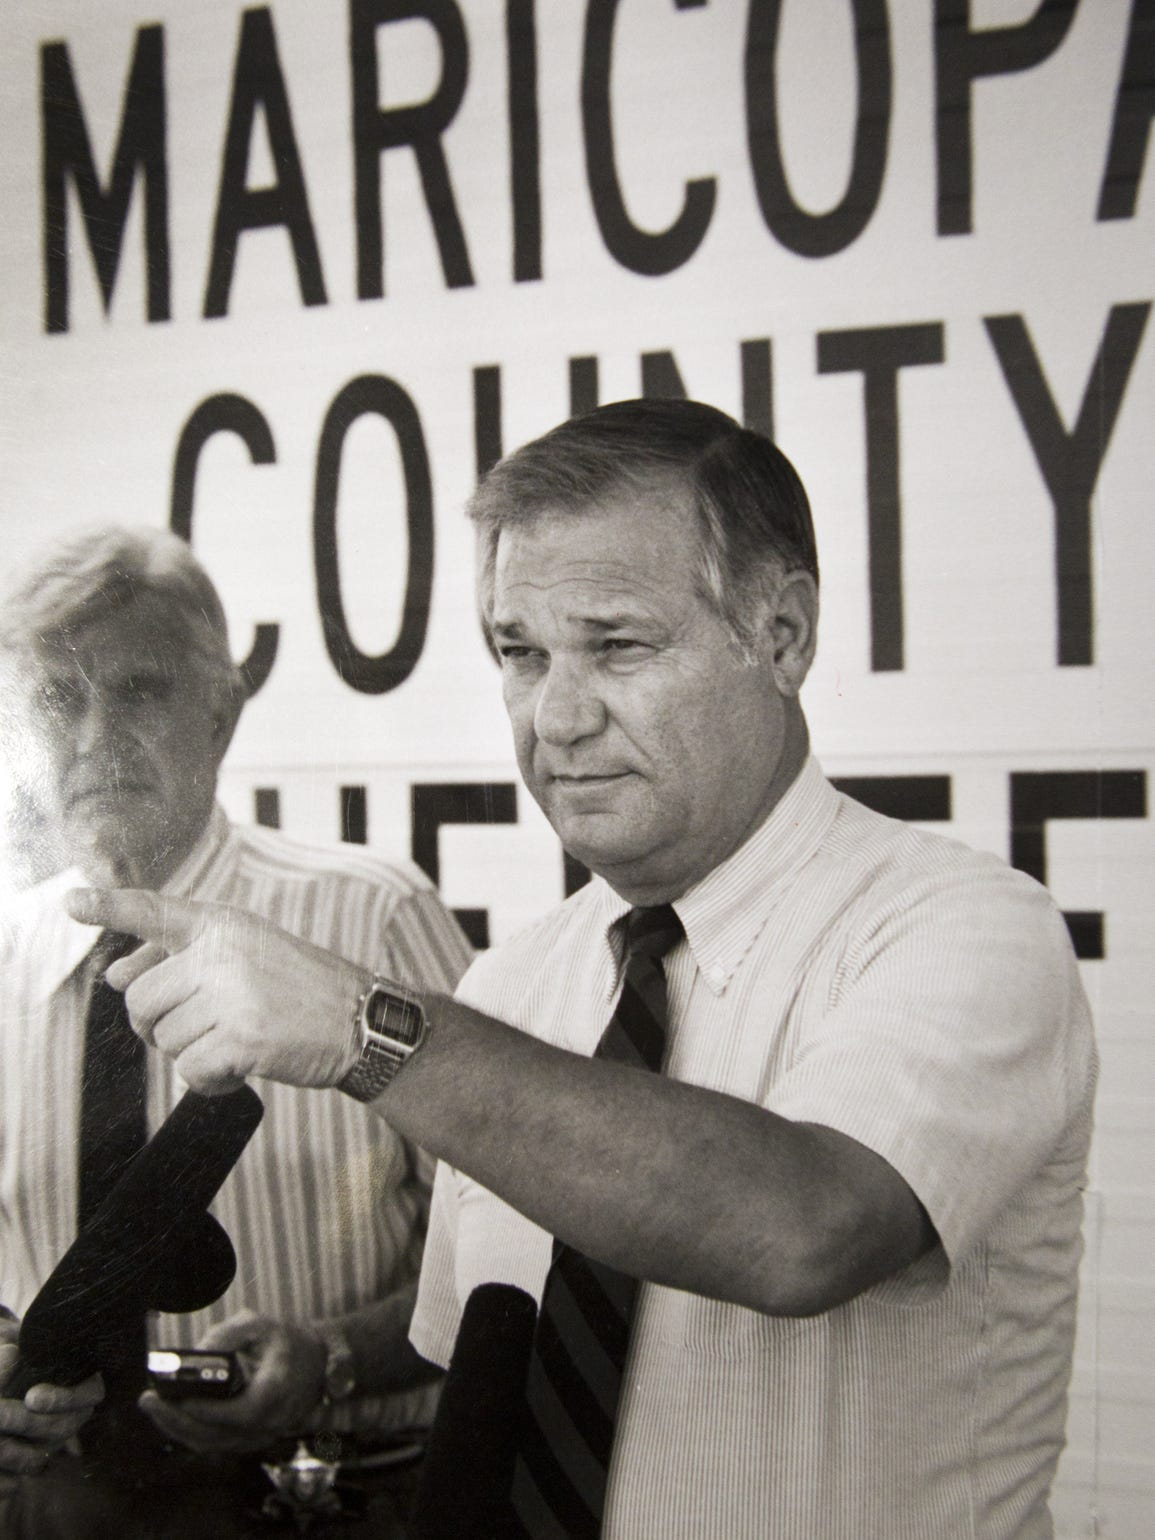 In 1991, Maricopa County Sheriff Tom Agnos answers